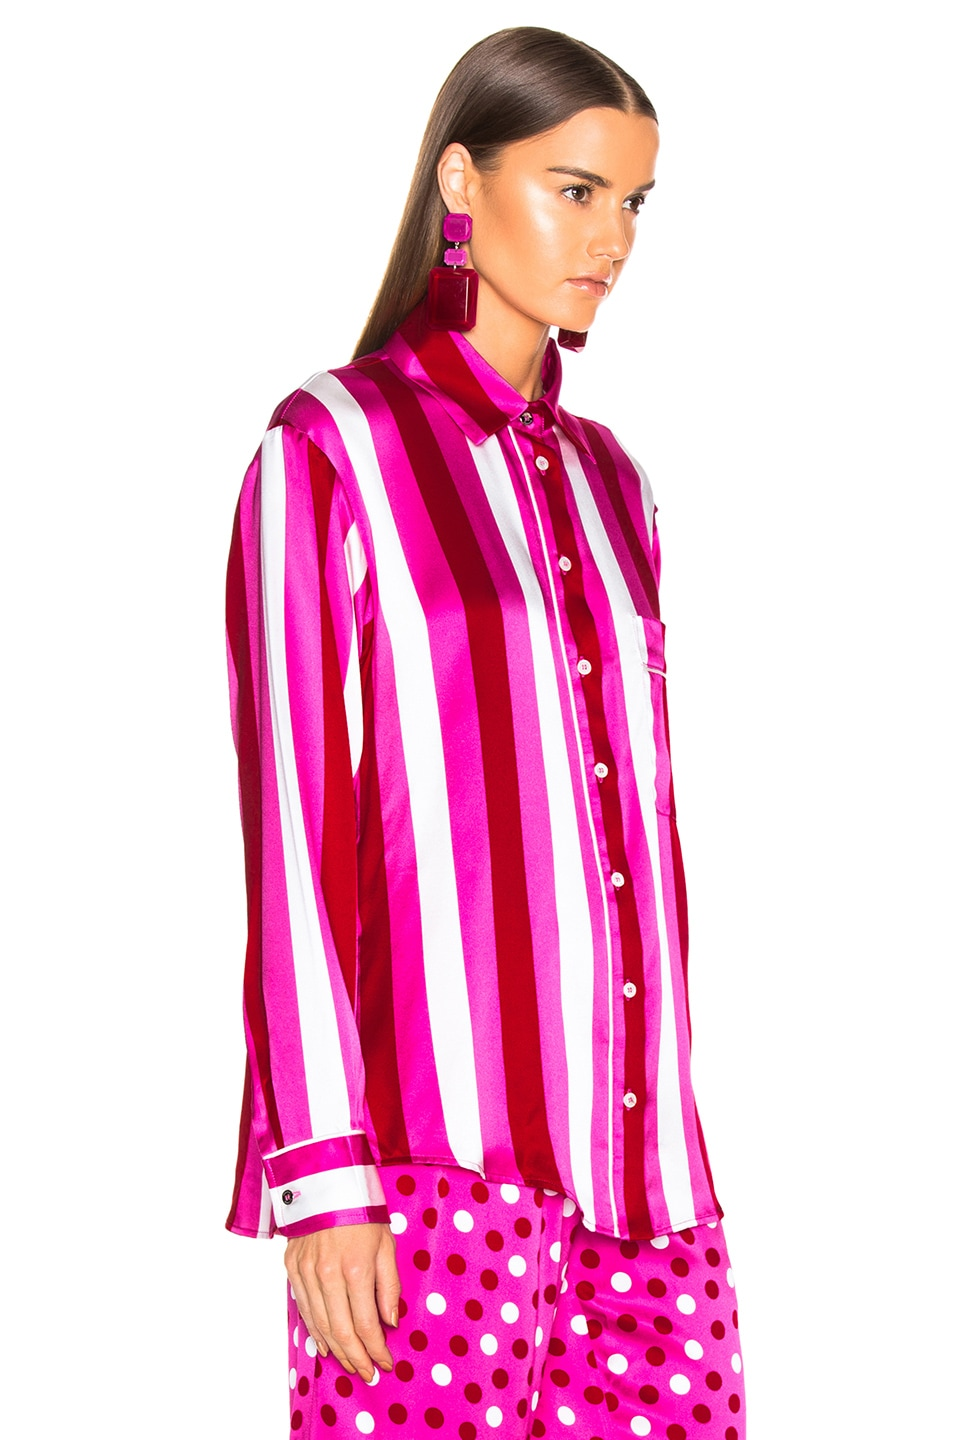 Image 2 of Maggie Marilyn Hand In My Hand Top in Pink, White & Red Stripe